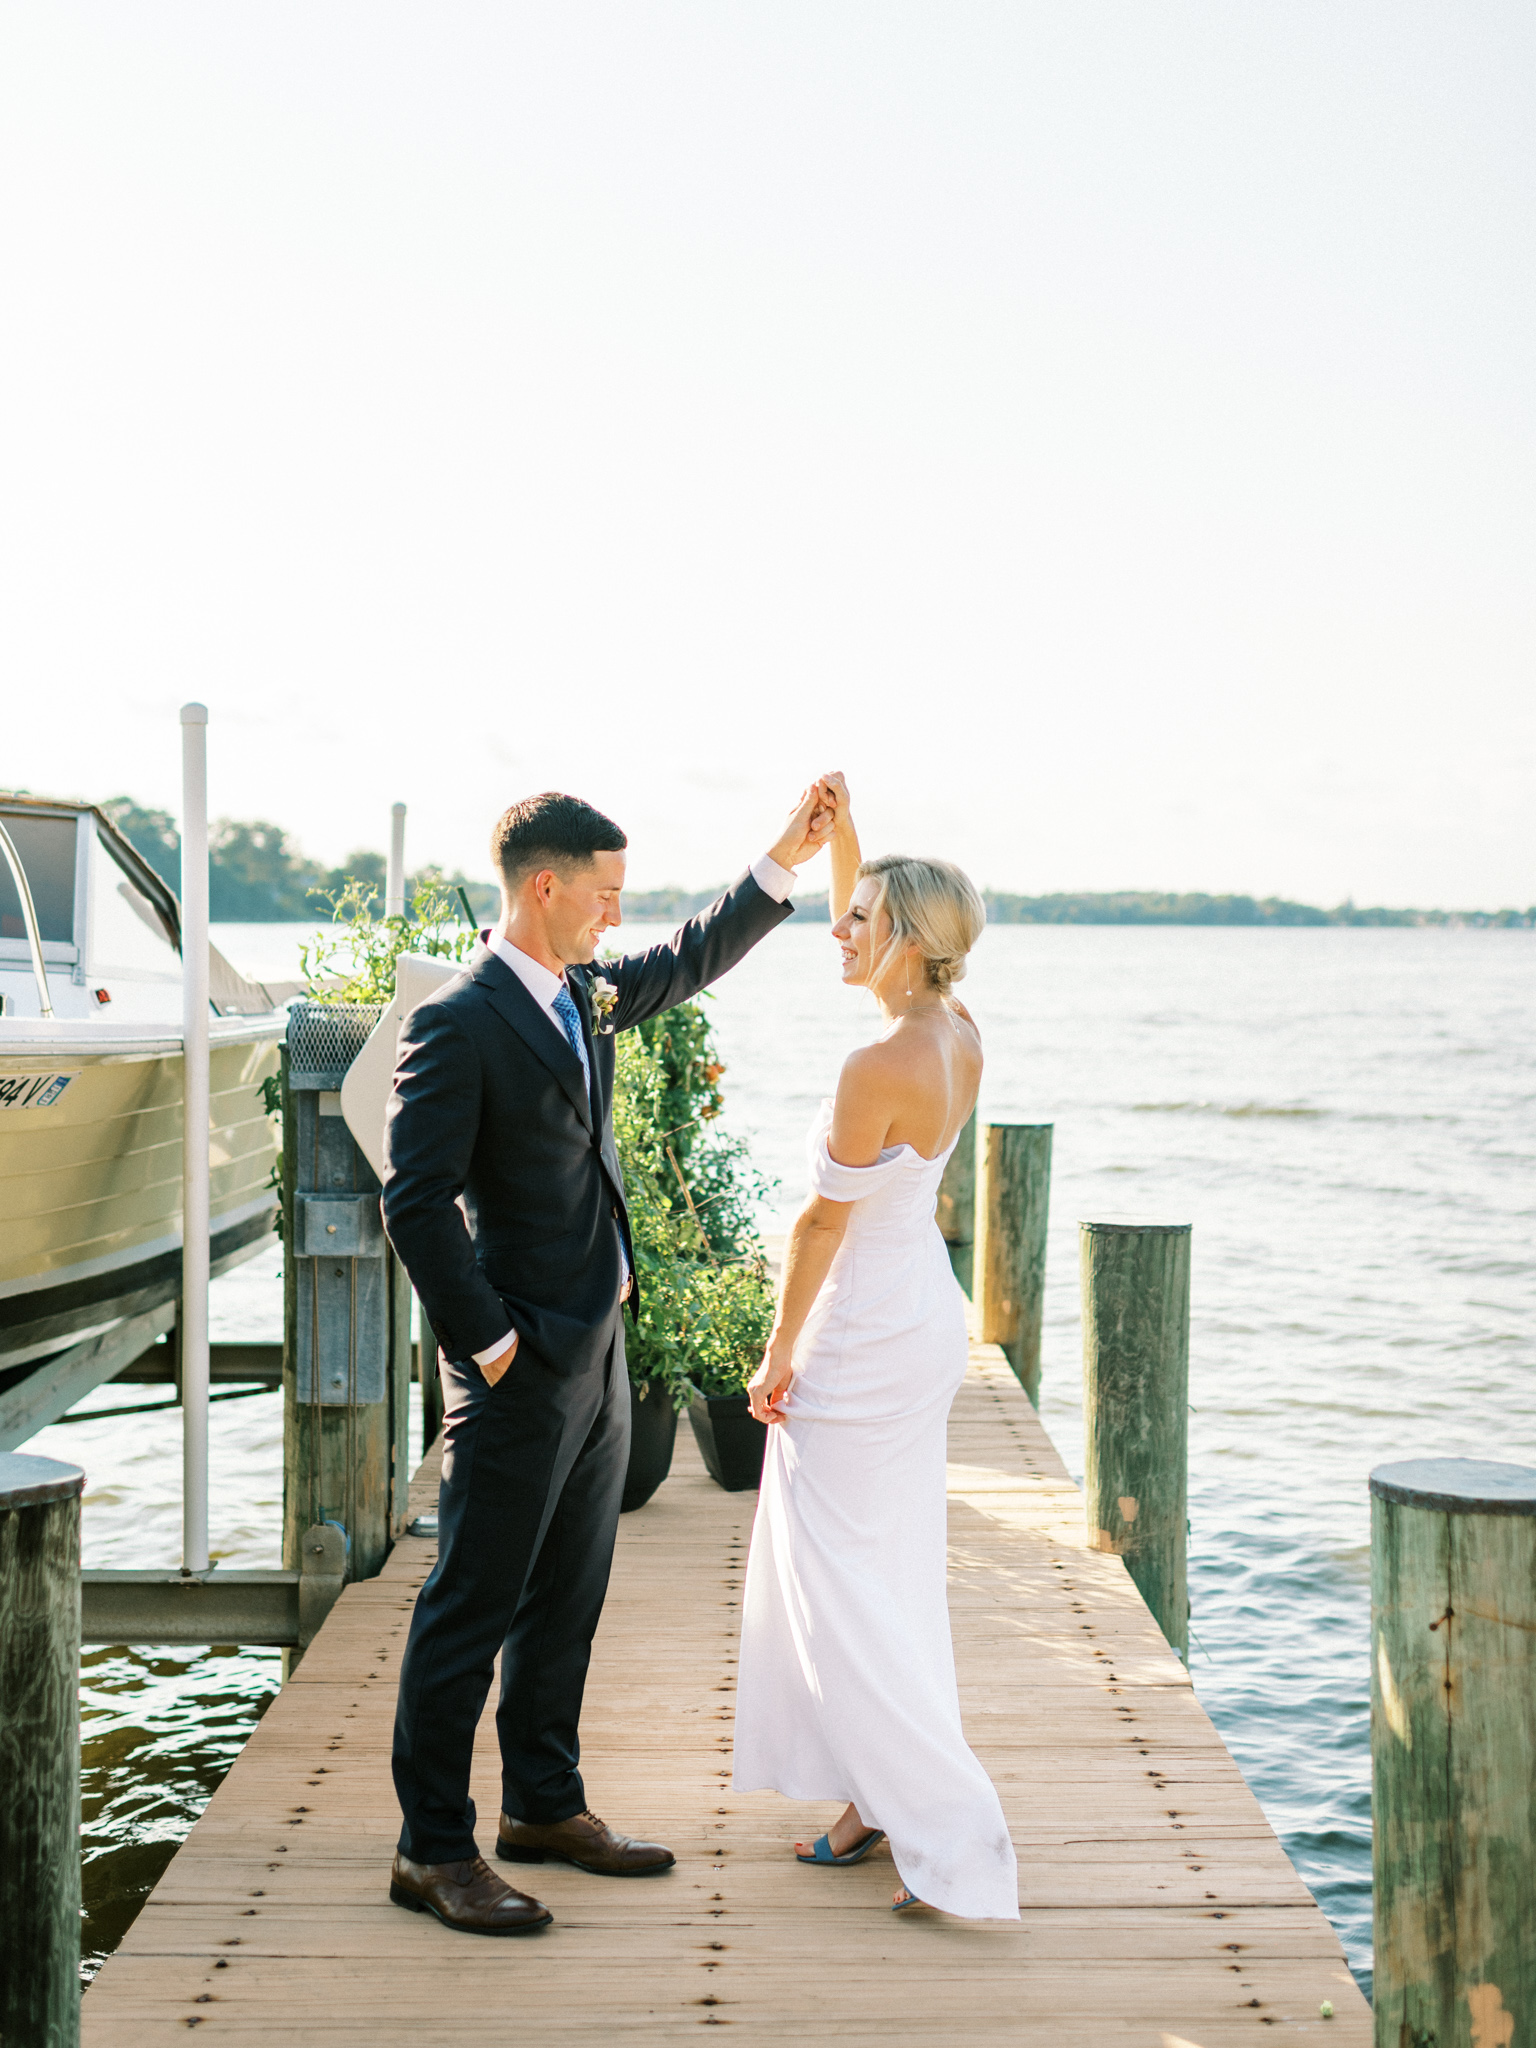 Gray_Joiner_e. losinio photography_annapolis-maryland-waterfront-elopement-293